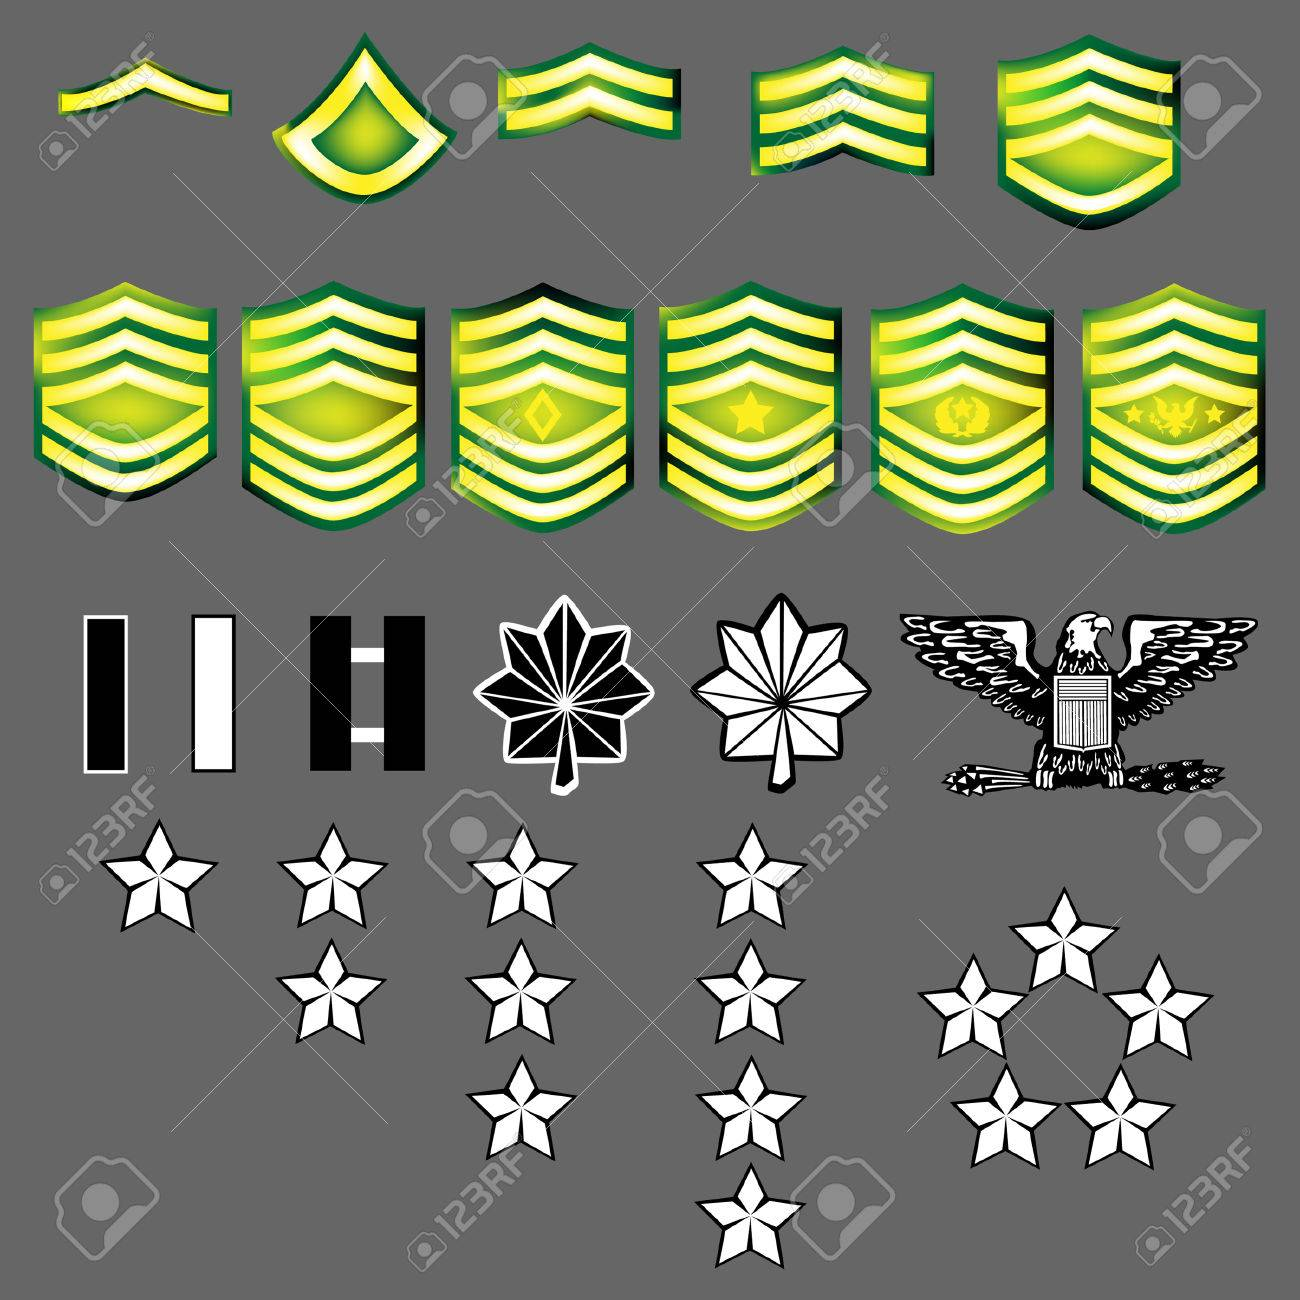 Army National Guard Ranks And Insignia us Army Rank Insignia For